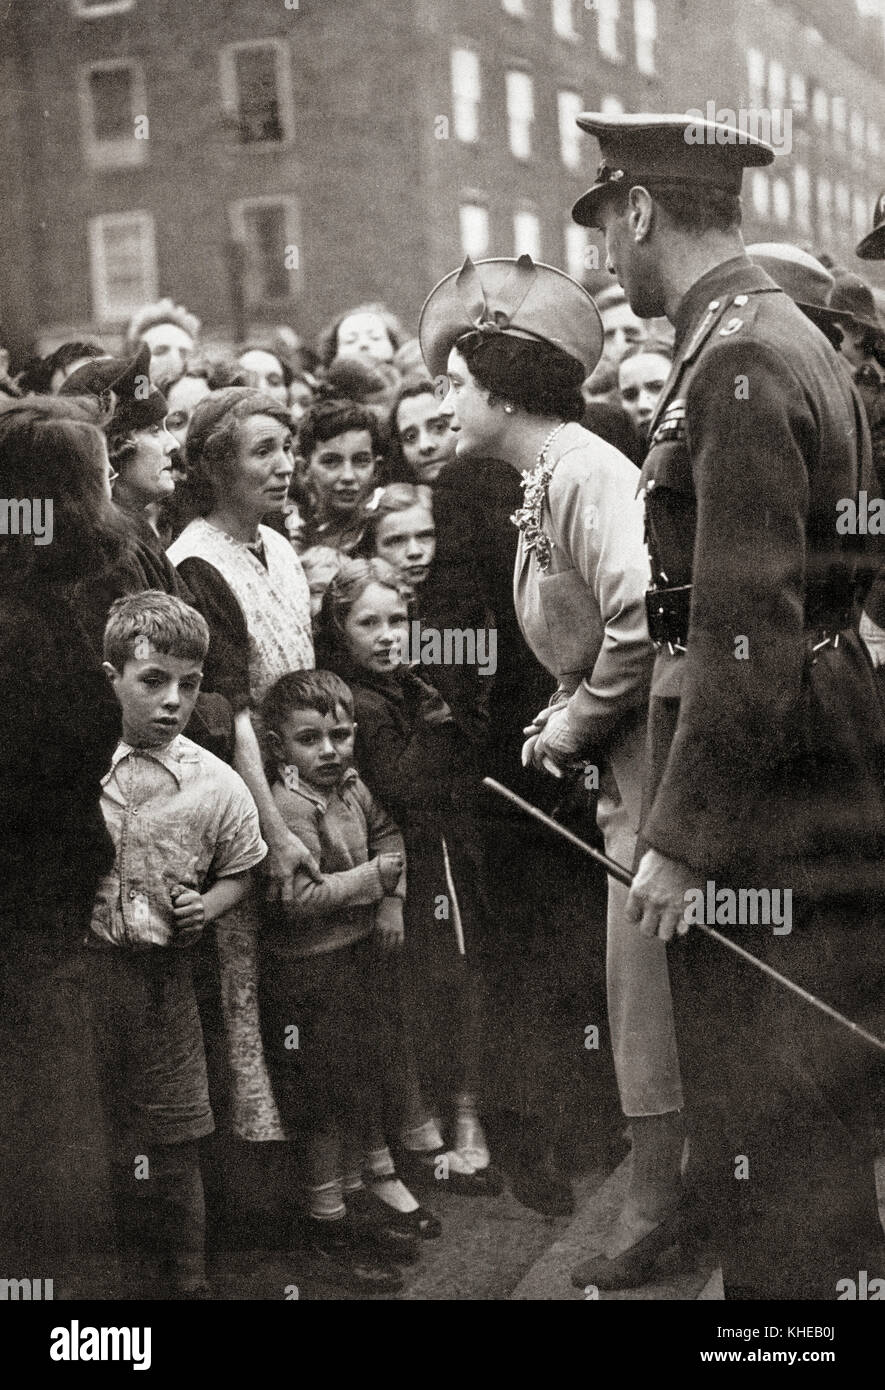 Queen Elizabeth visiting the people of London during World War Two.  Queen Elizabeth, The Queen Mother.  Elizabeth - Stock Image